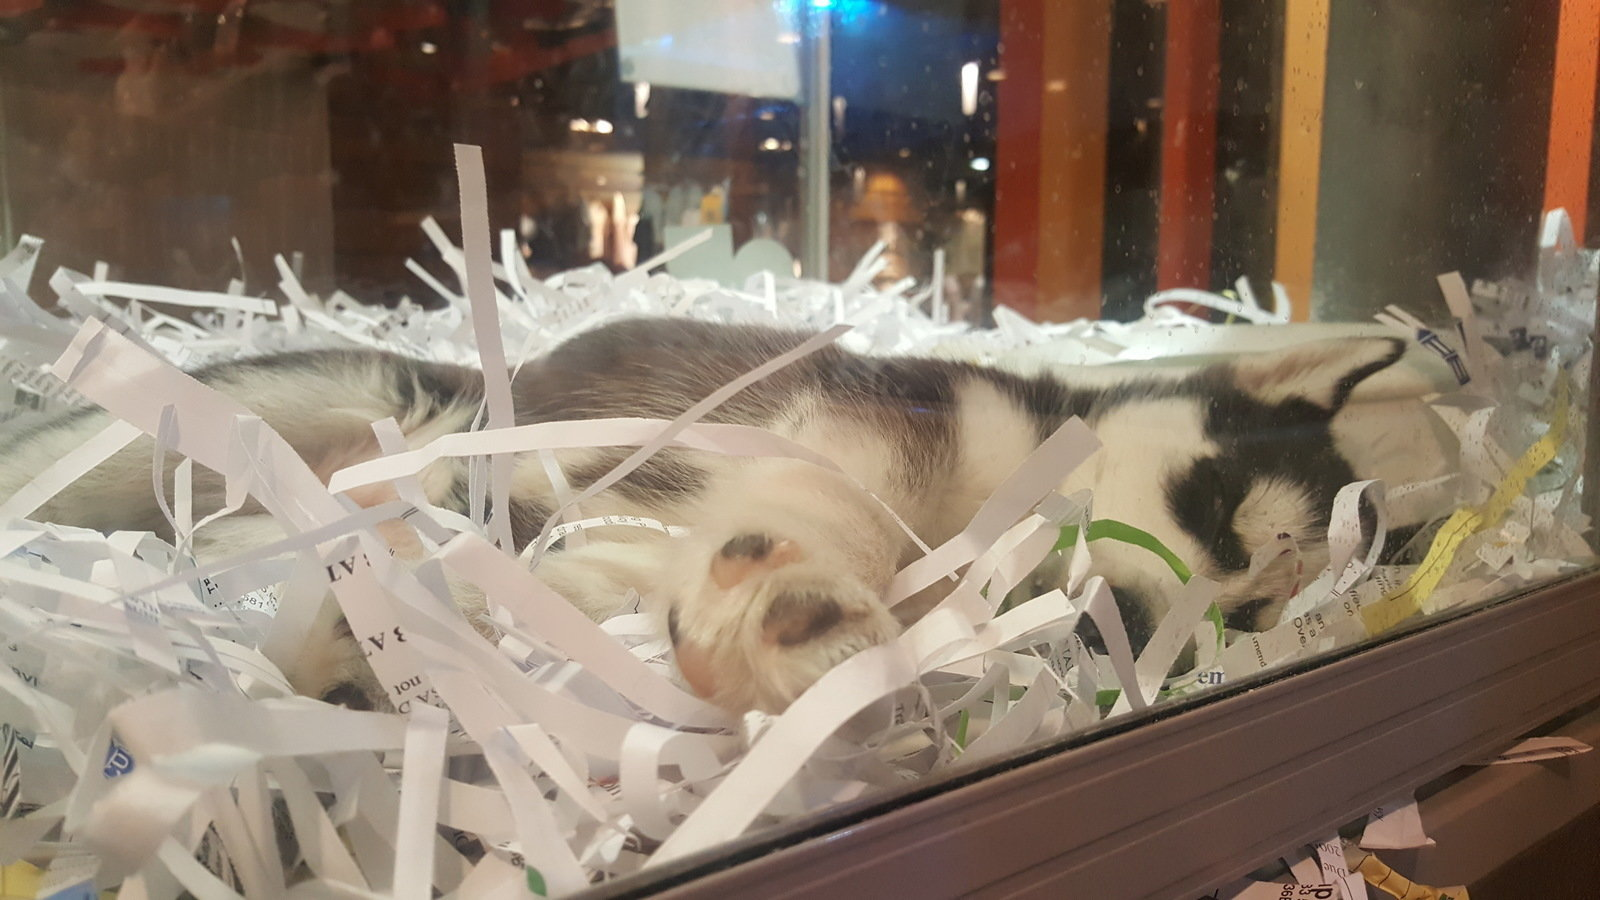 Down Pillows Animal Cruelty : Petition ? rspca : Shut down @Pets Melbournce Central due to Animal cruelty ? Change.org